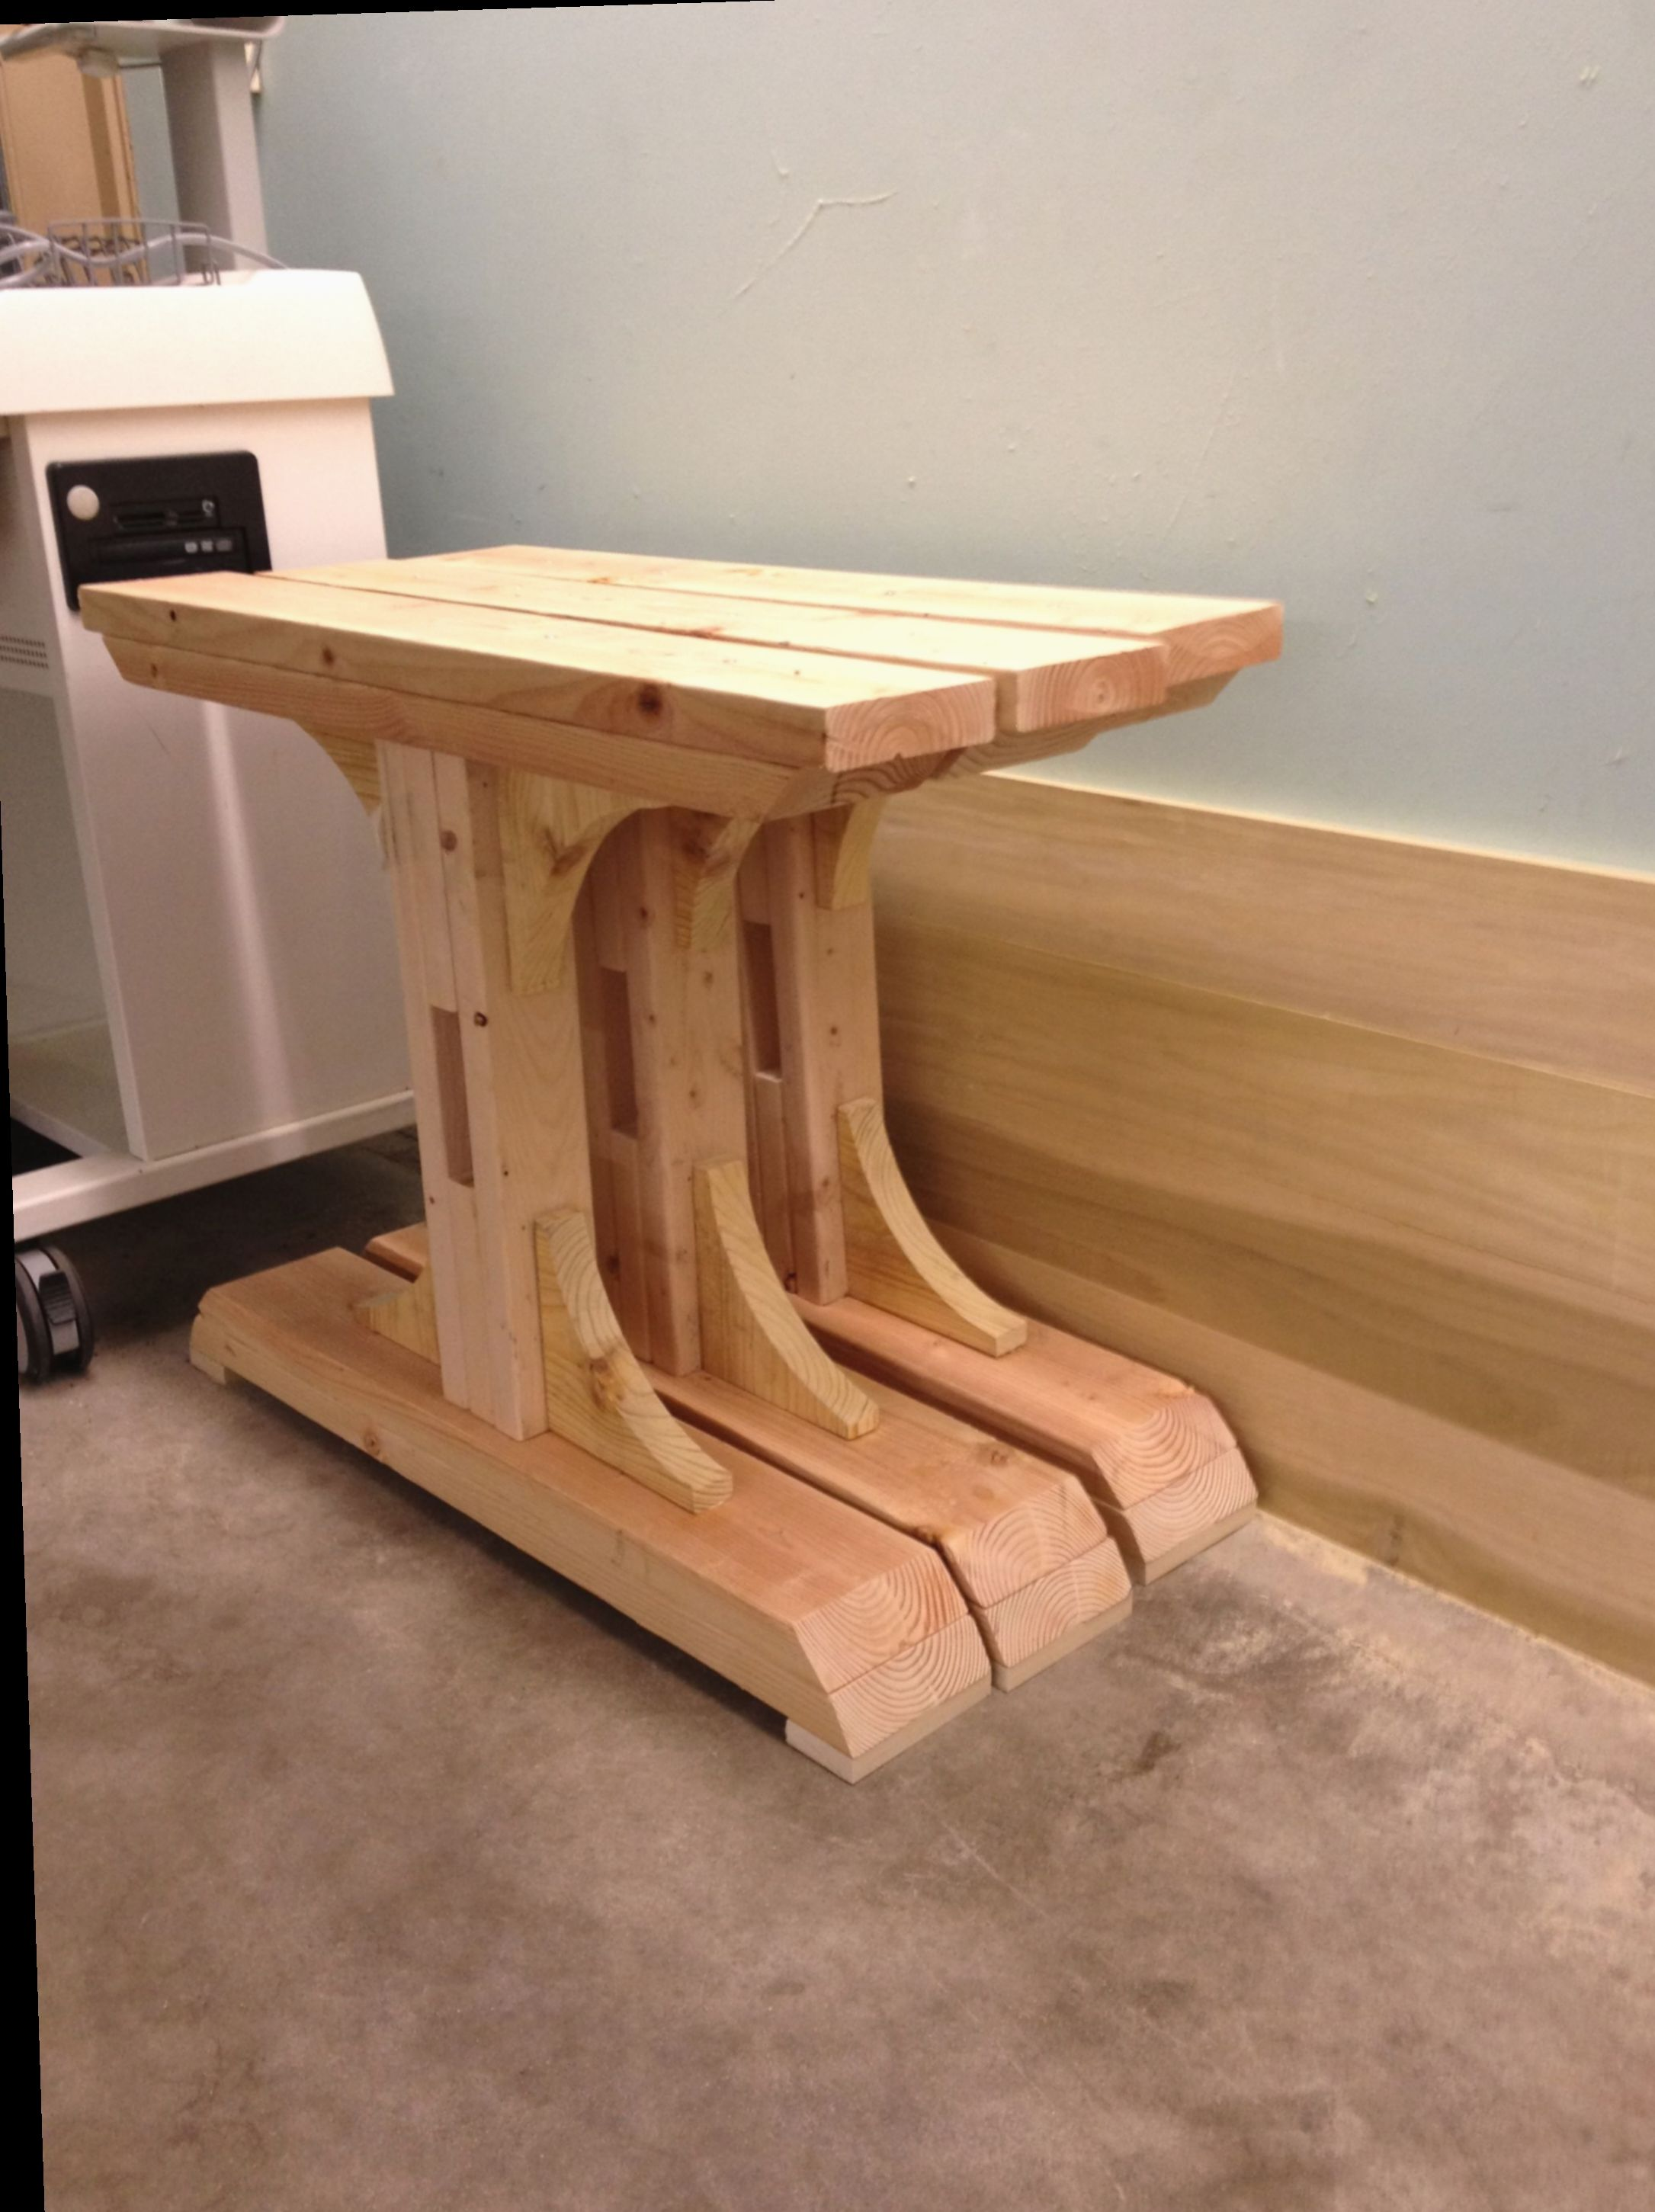 Diy table legs homemade sustainabilityhouse camping